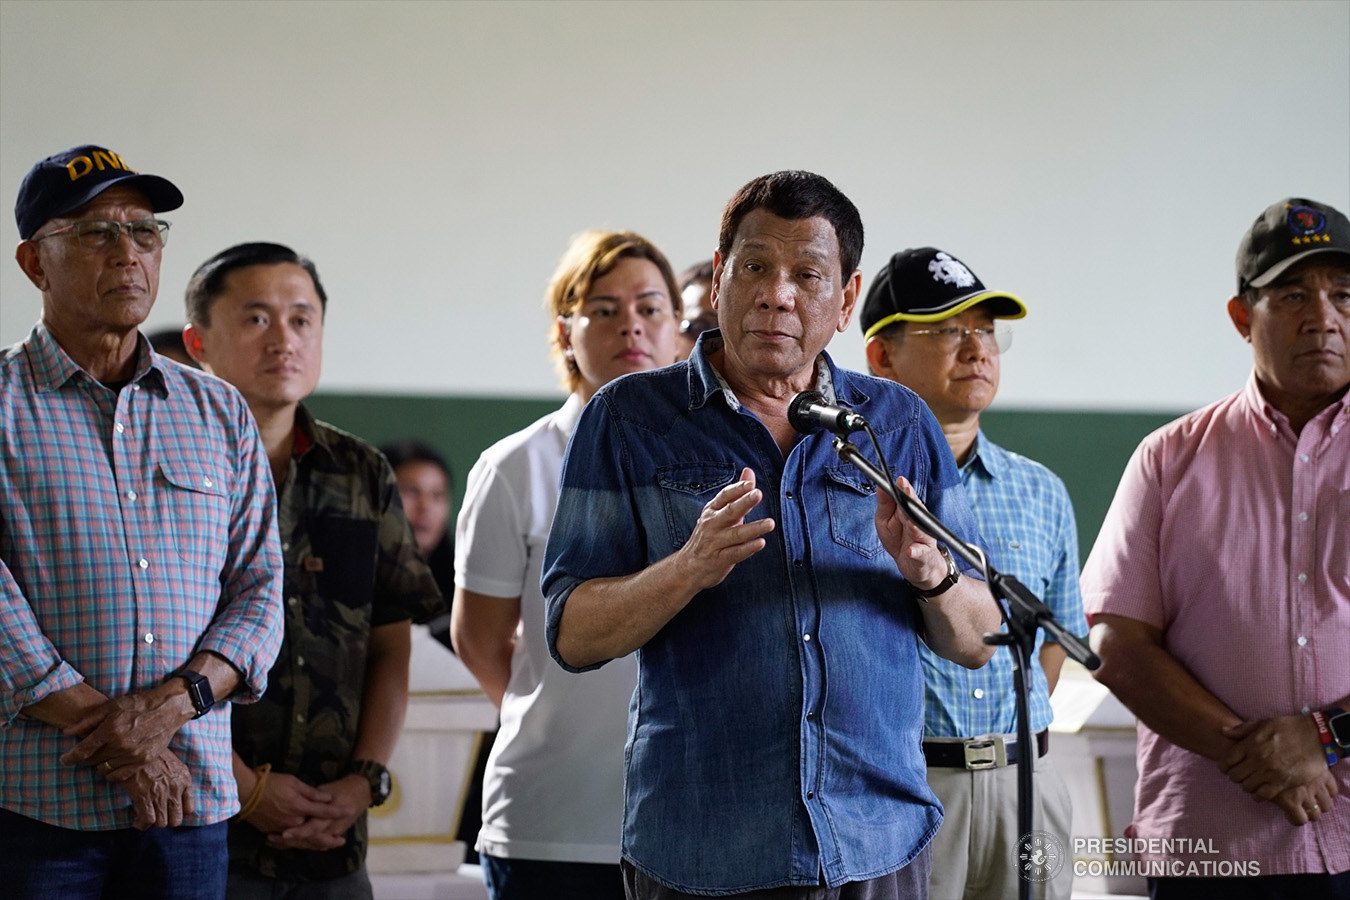 """President Rodrigo Roa Duterte offers his condolences to the families of the victims who died during the twin bombings at the Cathedral of Our Lady of Mount Carmel in Jolo, Sulu as he visited Camp Teodulfo Bautista in Jolo on January 28, 2019. Also in the photo are Defense Secretary Delfin Lorenzana, Former Special Assistant to the President Christopher Lawrence """"Bong"""" Go, Davao City Mayor Sara Duterte-Carpio, Interior and Local Government Secretary Eduardo Año, and National Security Adviser Hermogenes Esperon Jr. KING RODRIGUEZ/PRESIDENTIAL PHOTO"""